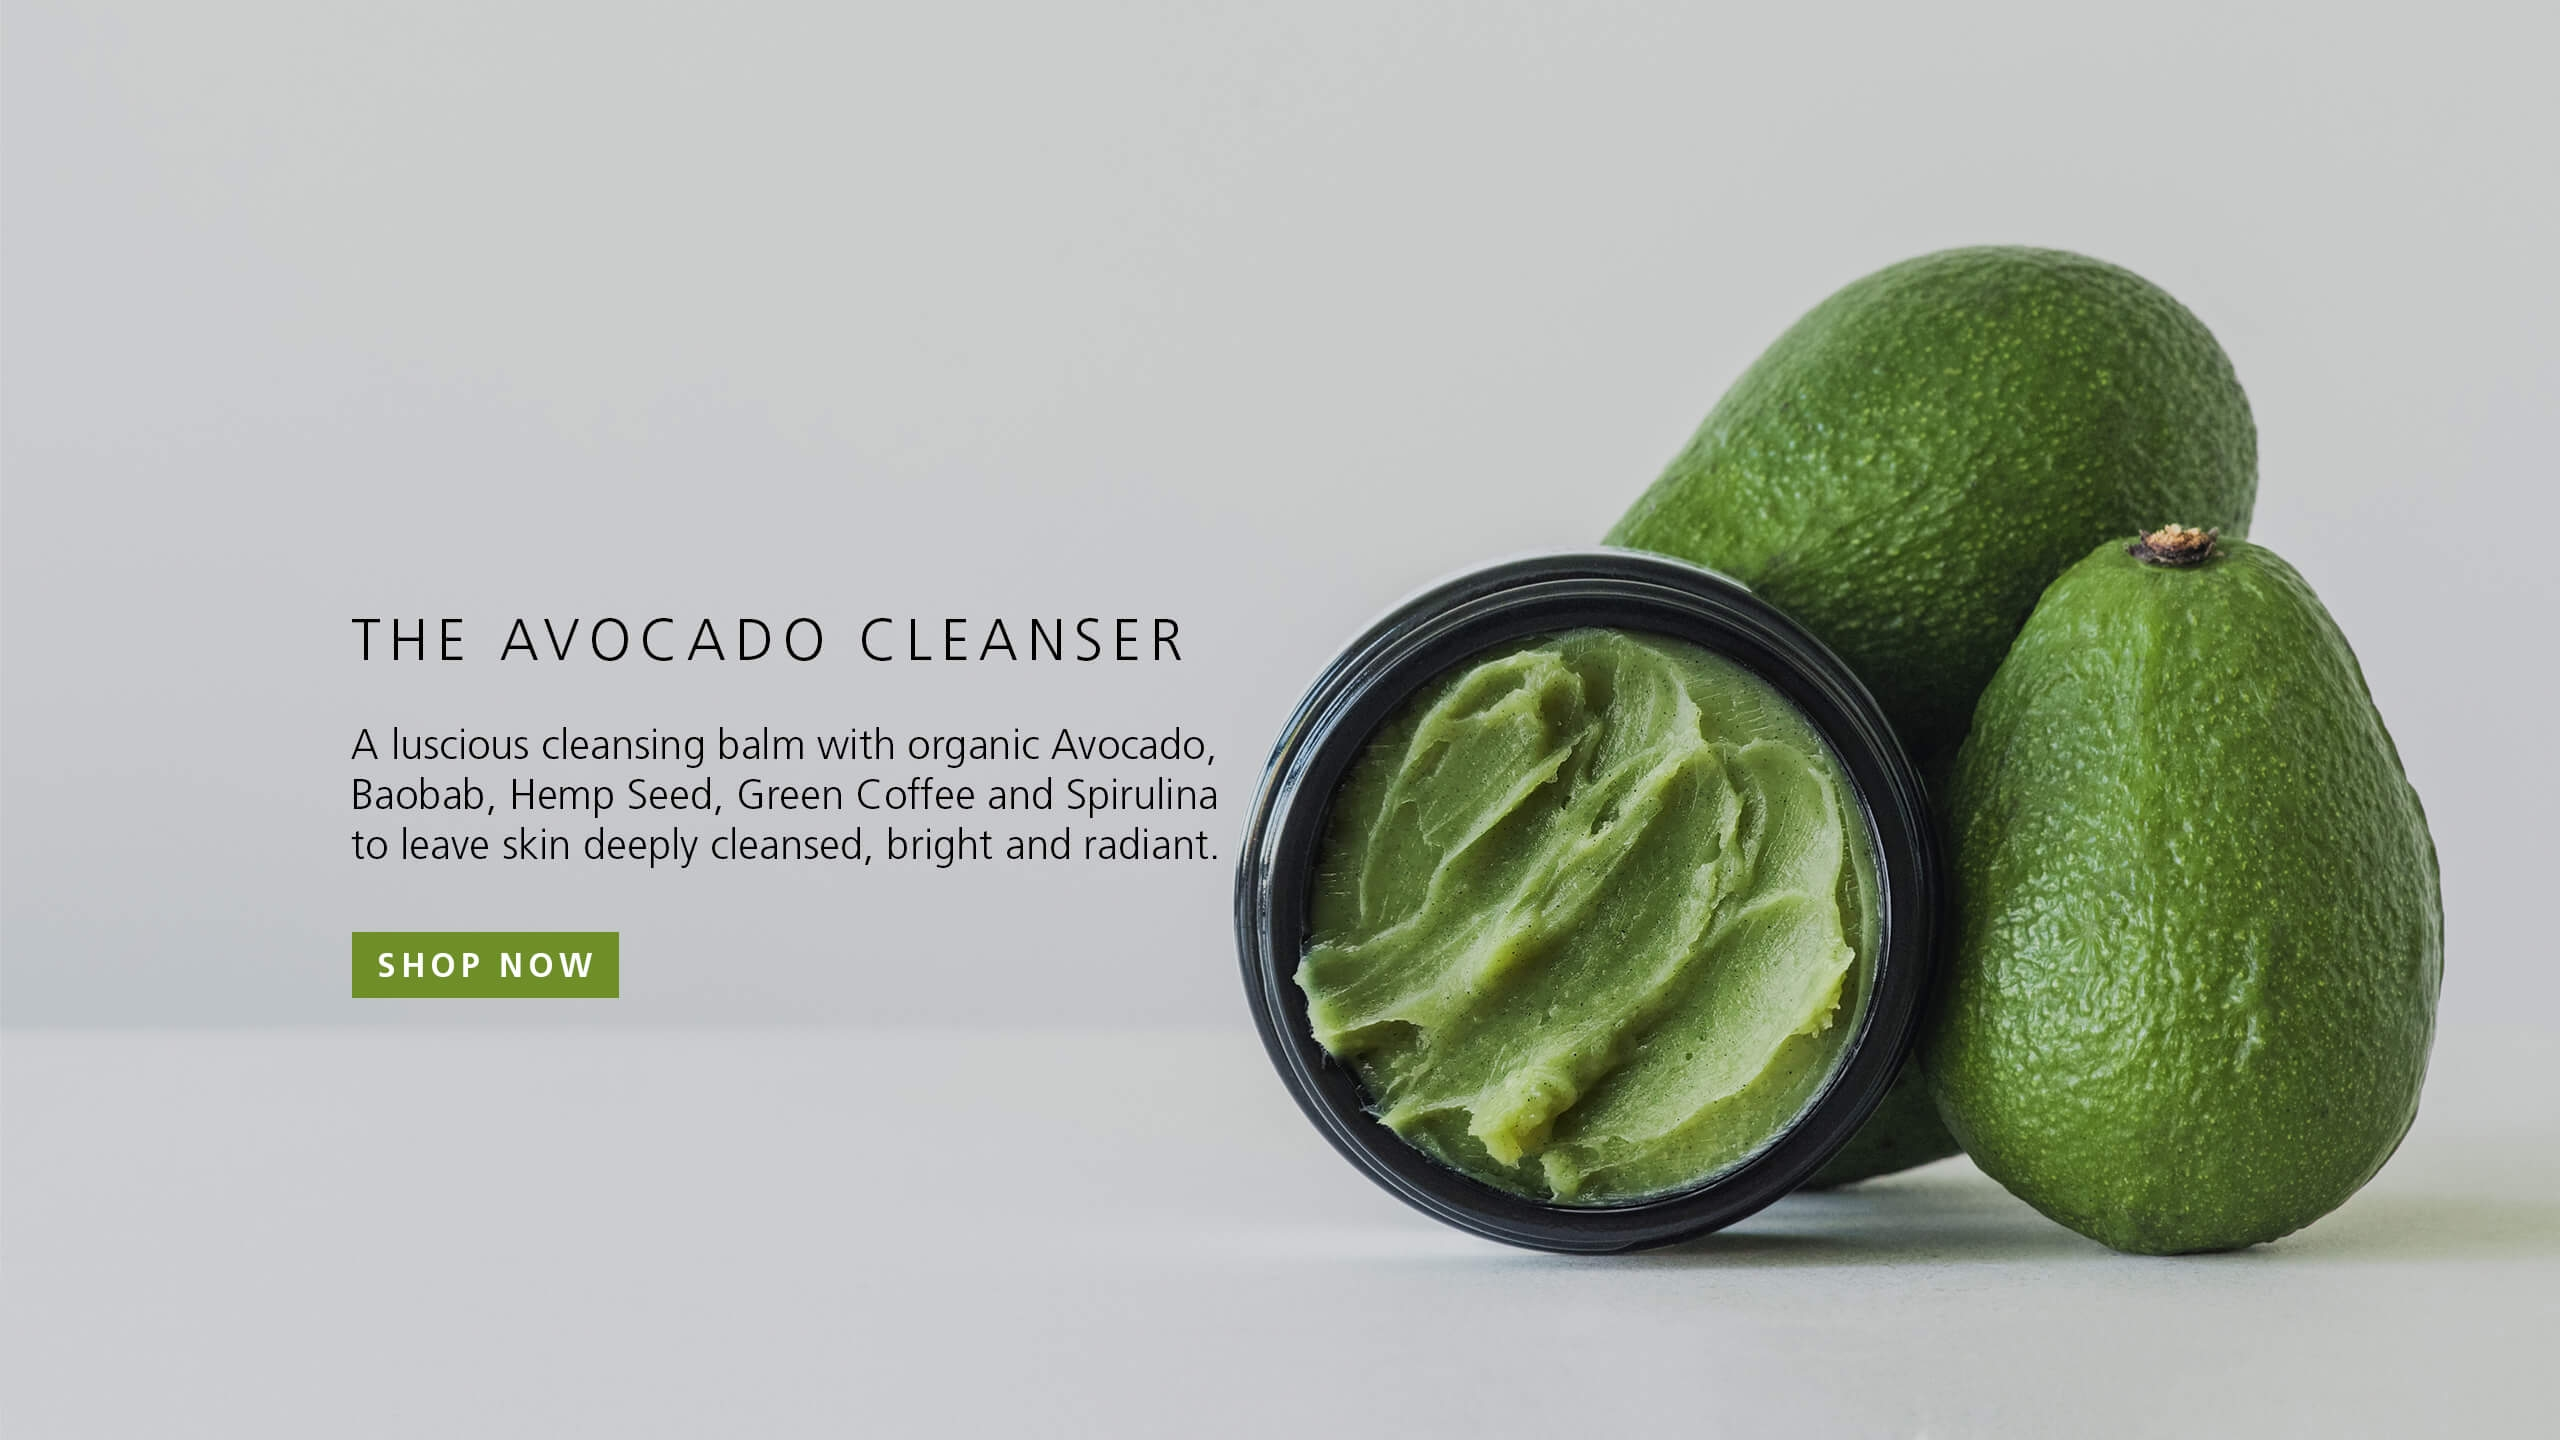 The Avocado Cleanser